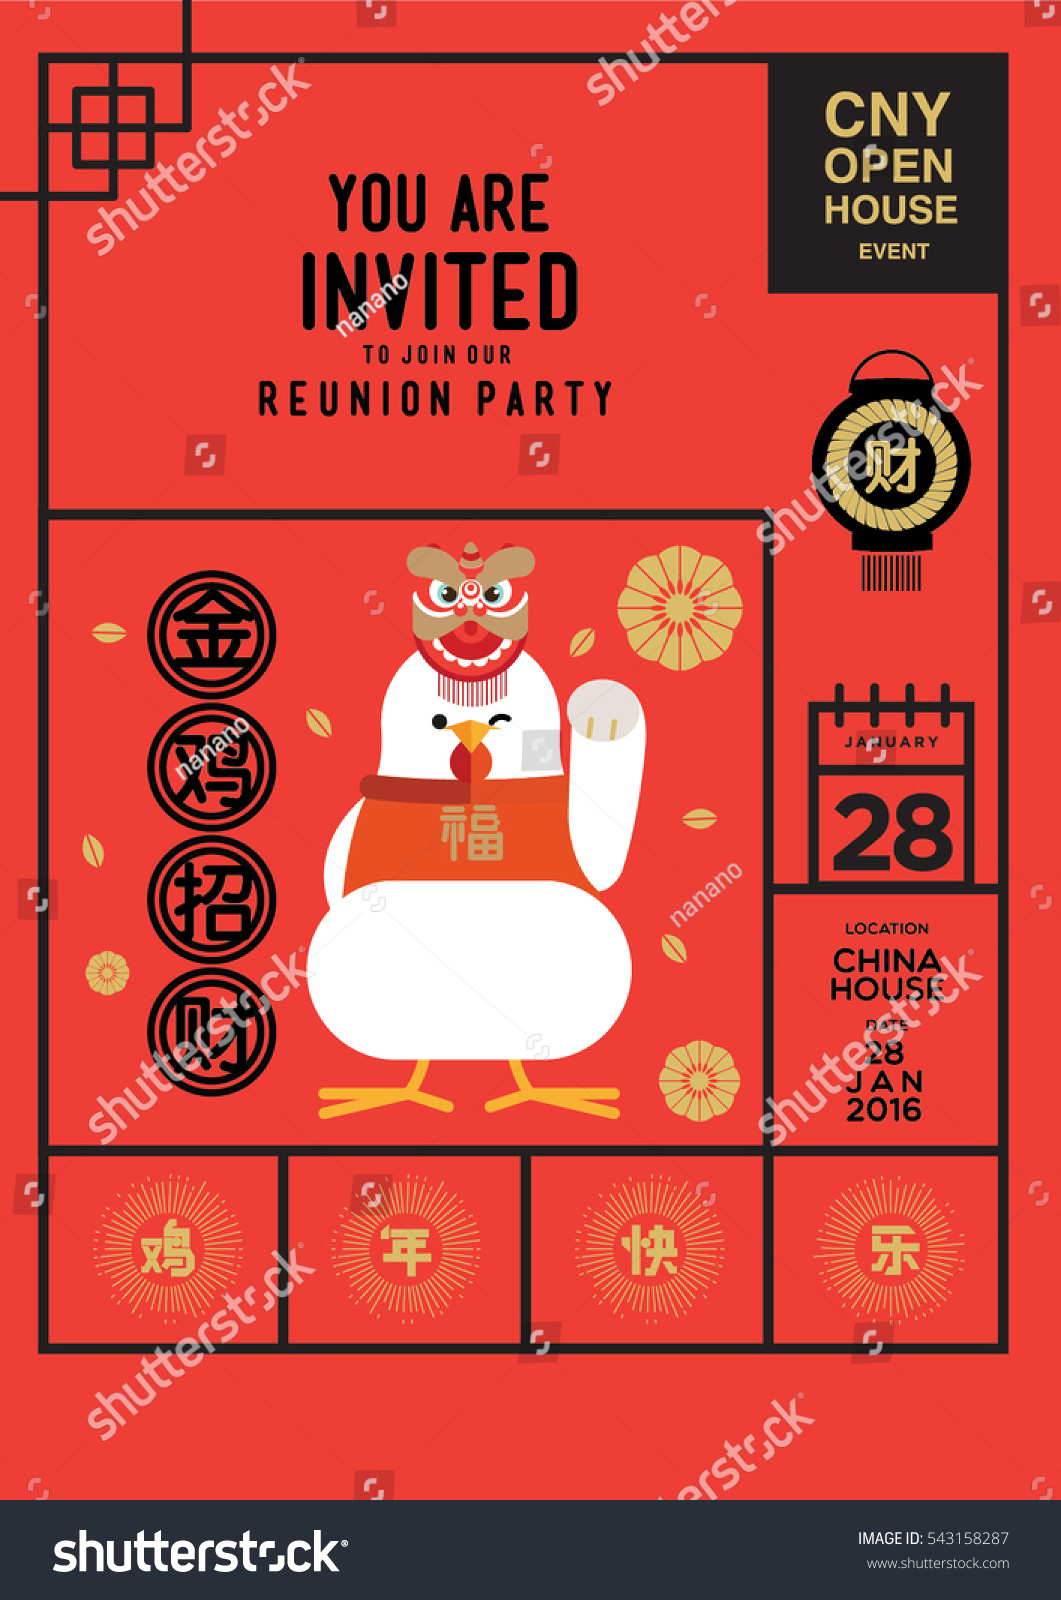 chinese new year invitation template - Ozil.almanoof.co